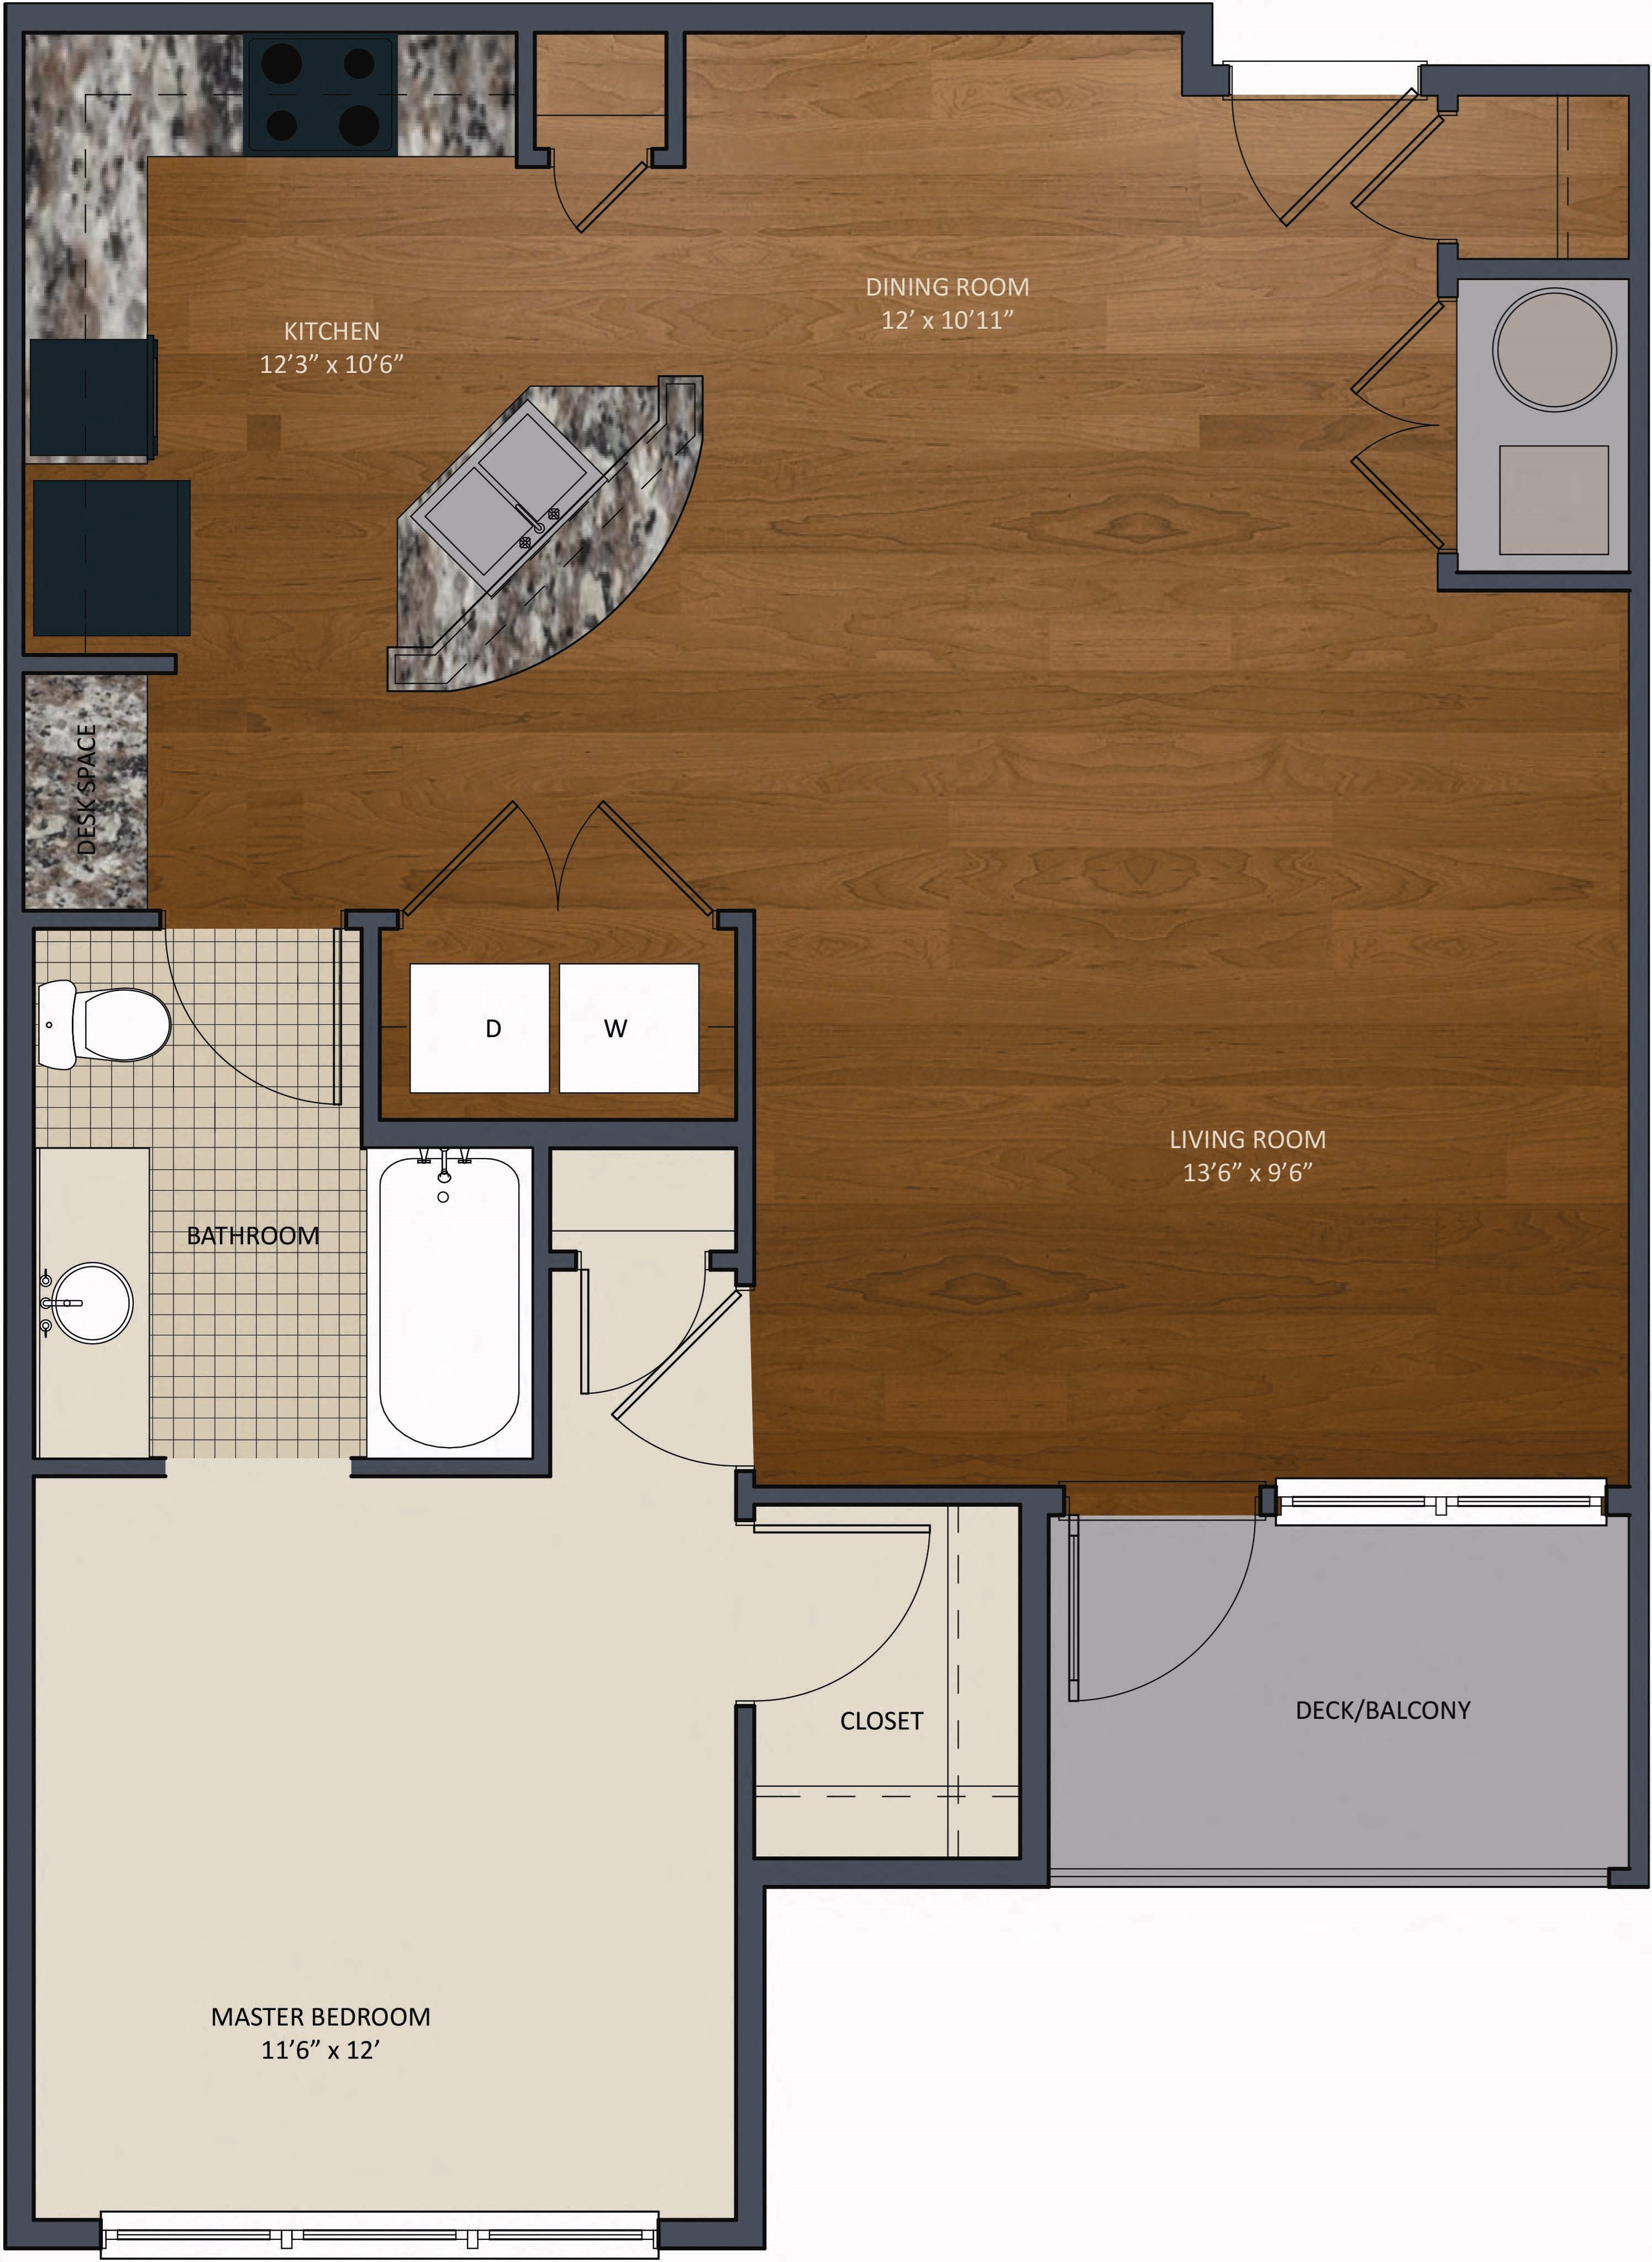 Floor Plans Of Aventine At Wilderness Hills Apartment